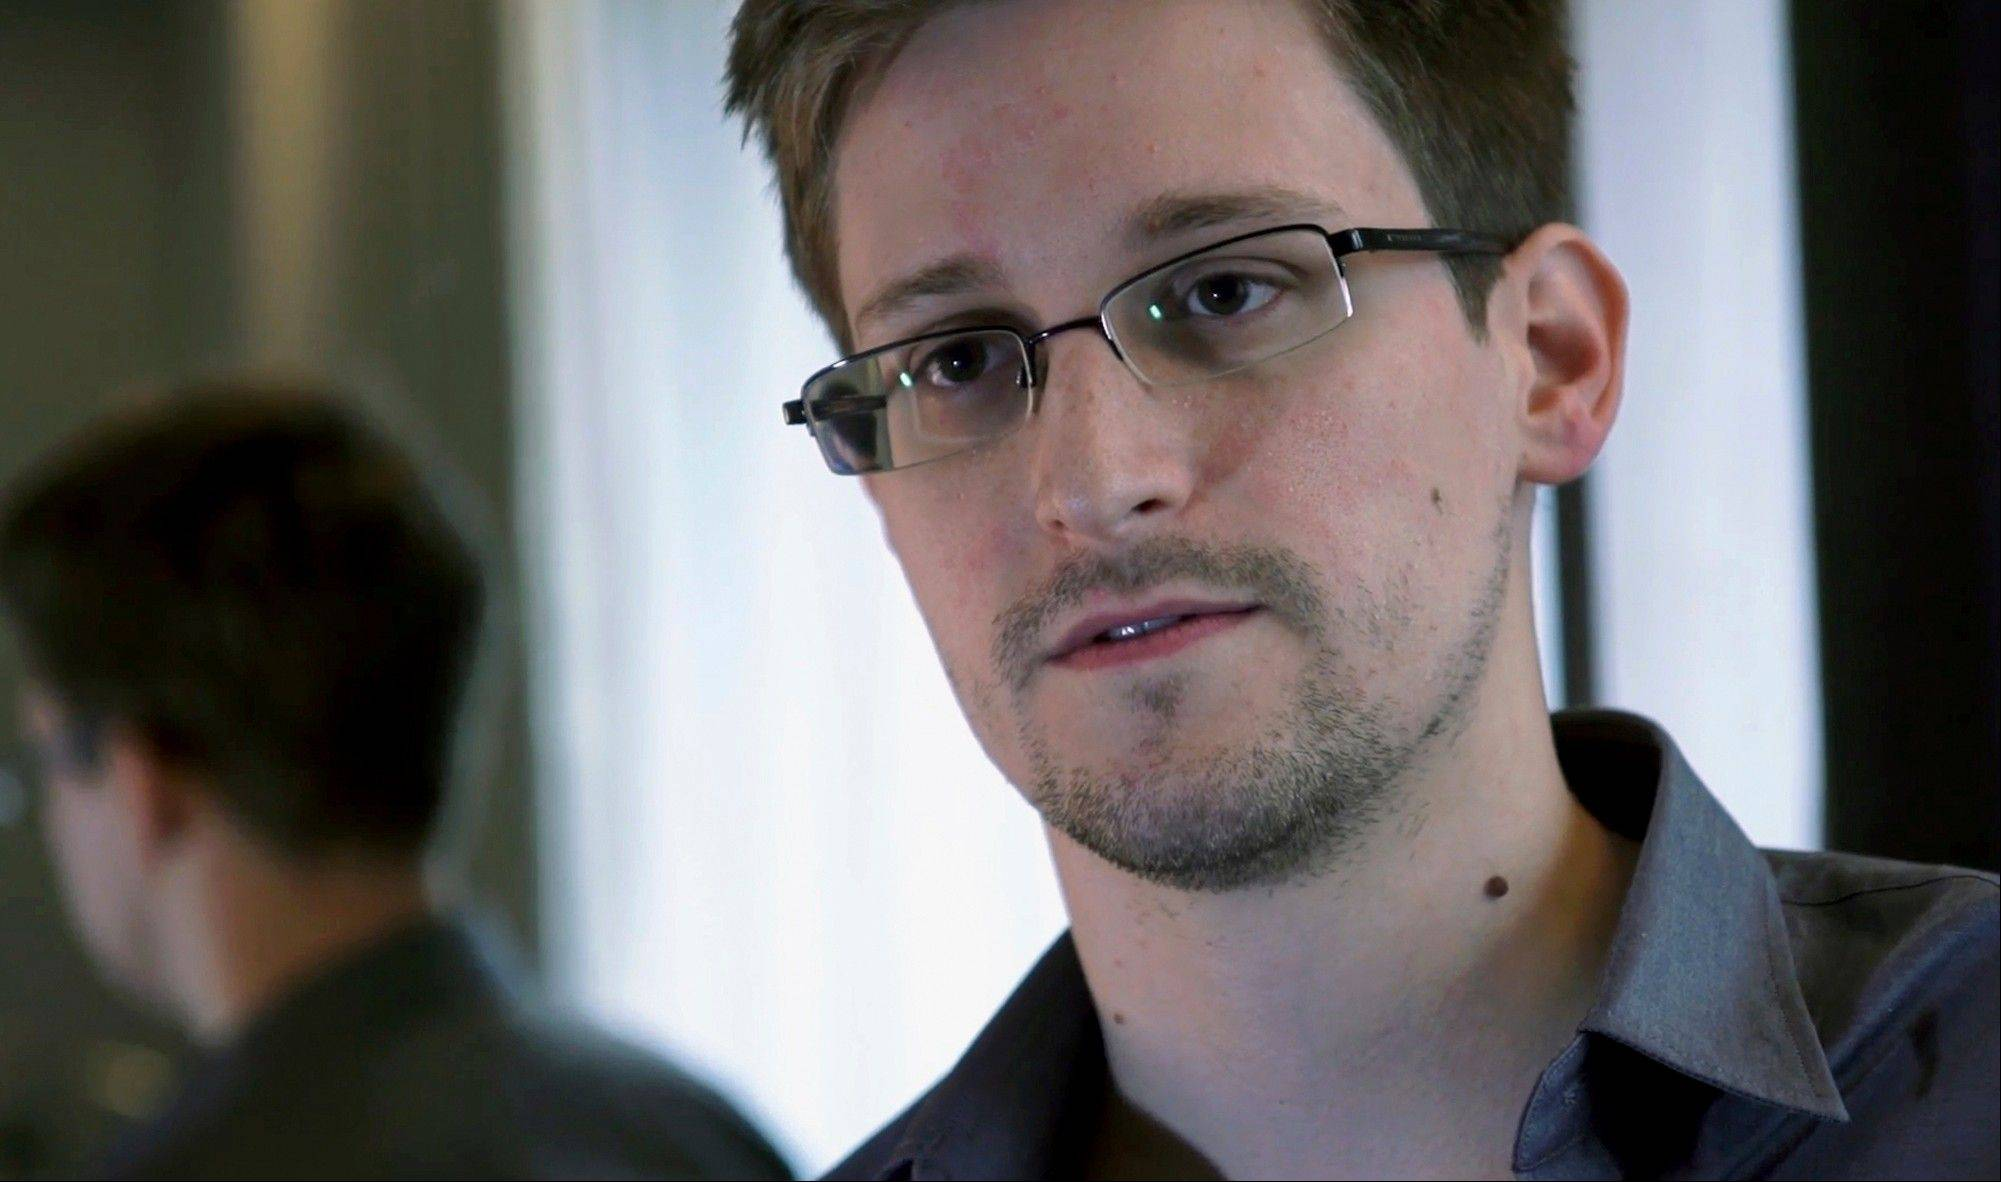 Two Norwegian lawmakers said Wednesday, Jan. 29, 2014 that they have jointly nominated former NSA contractor Edward Snowden for the 2014 Nobel Peace Prize.